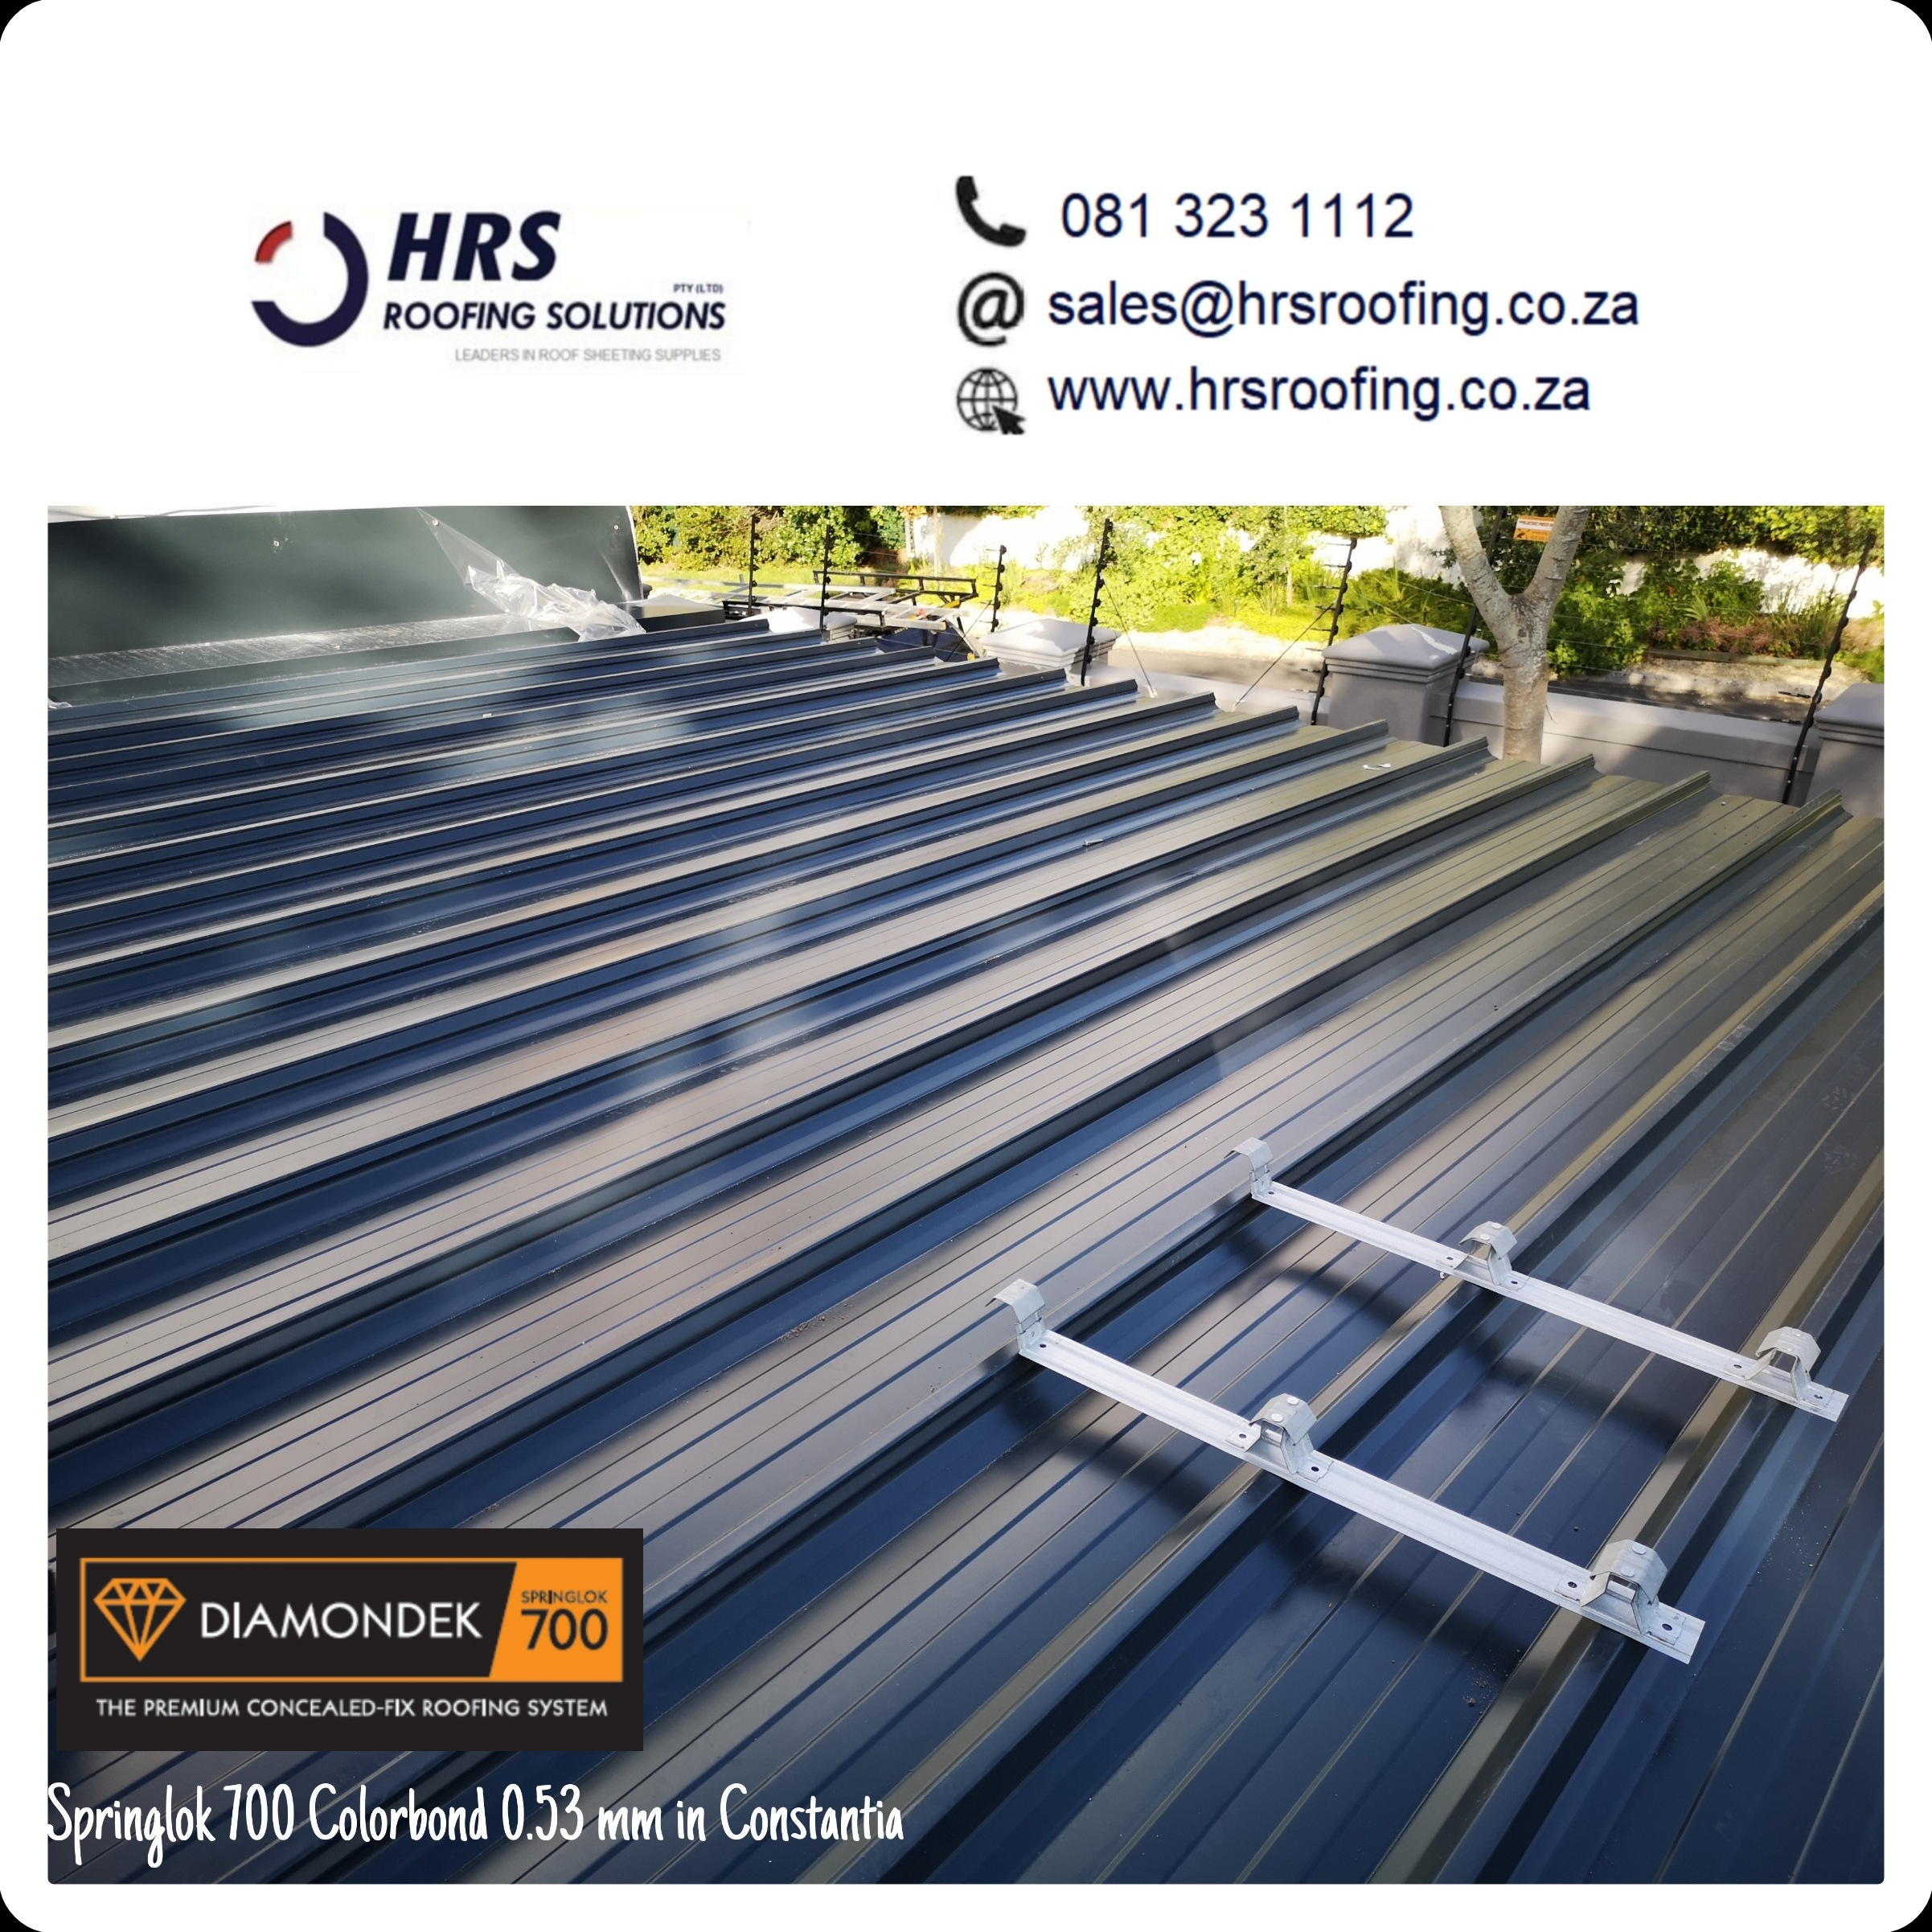 Springlok 700 Colorbond roof sheet cape town Constantia table view hrs roofing2 - Roofing Gallery